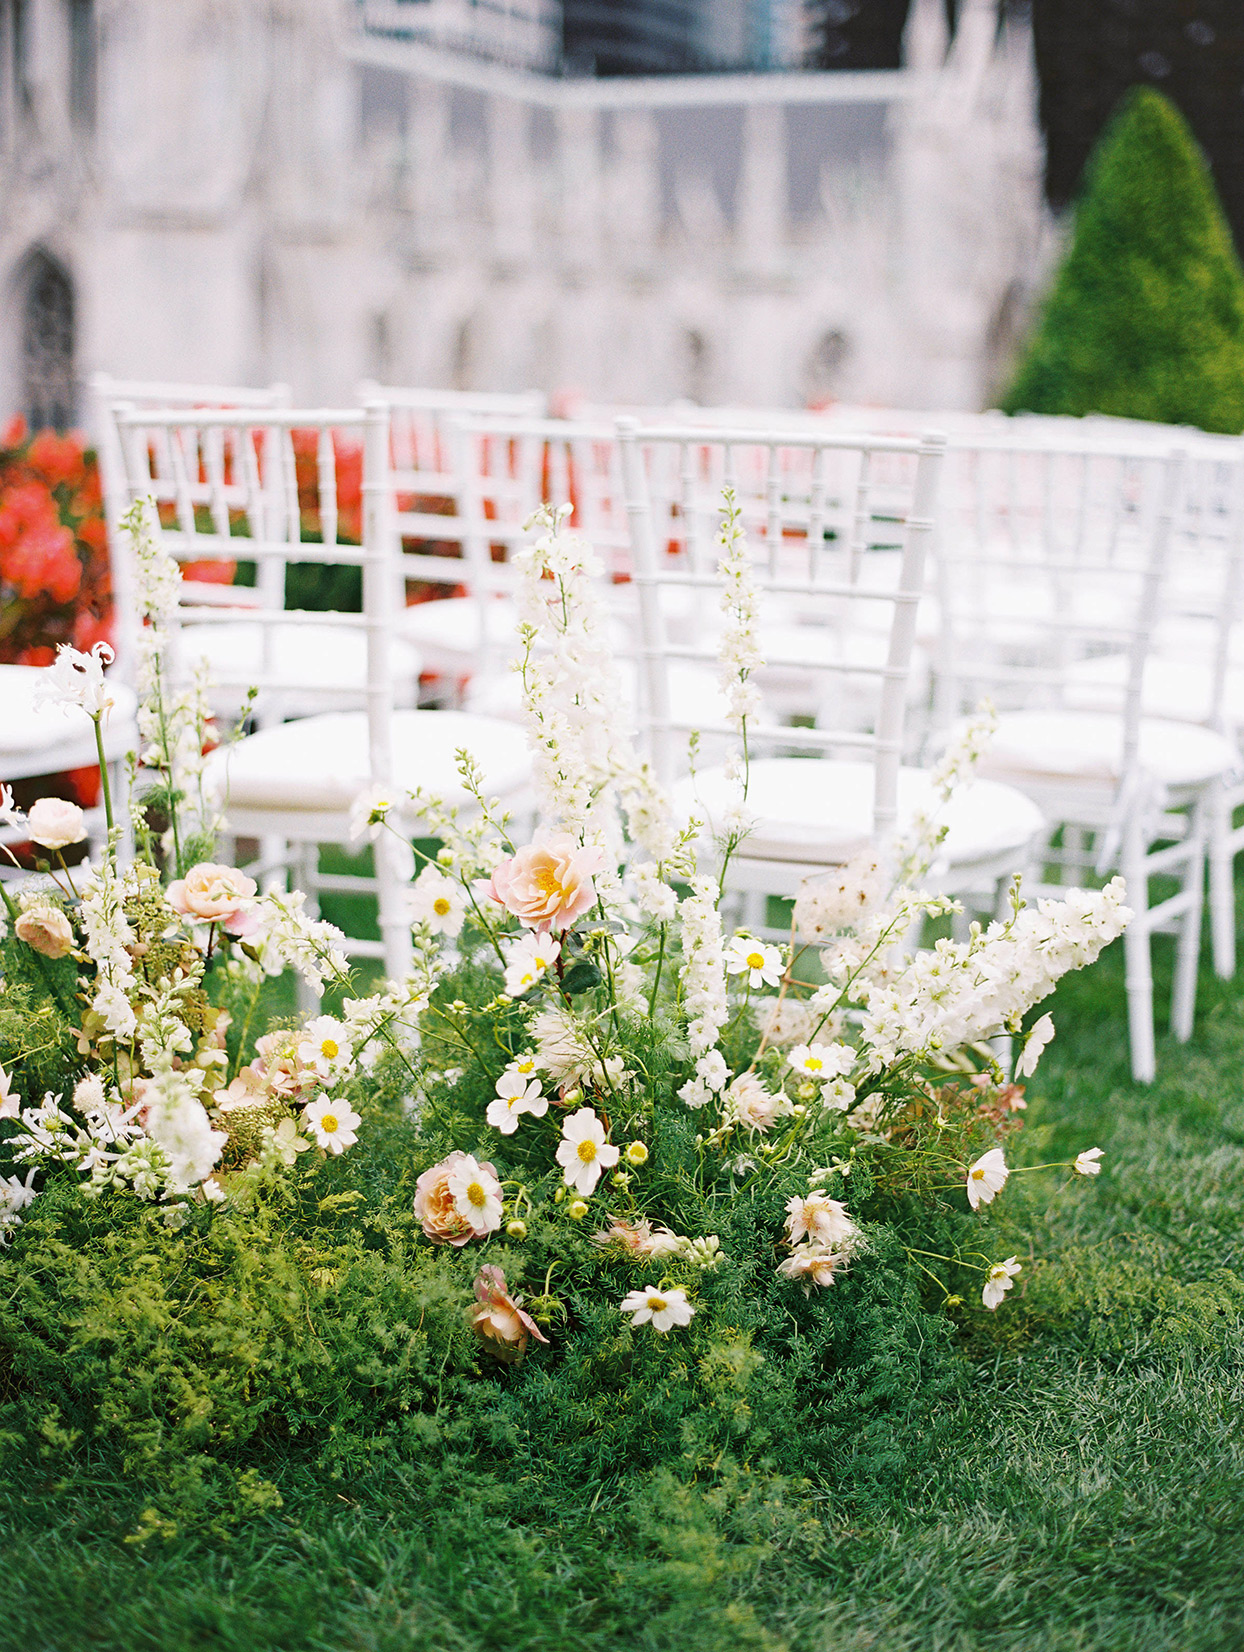 wedding ceremony white chairs with floral decorations